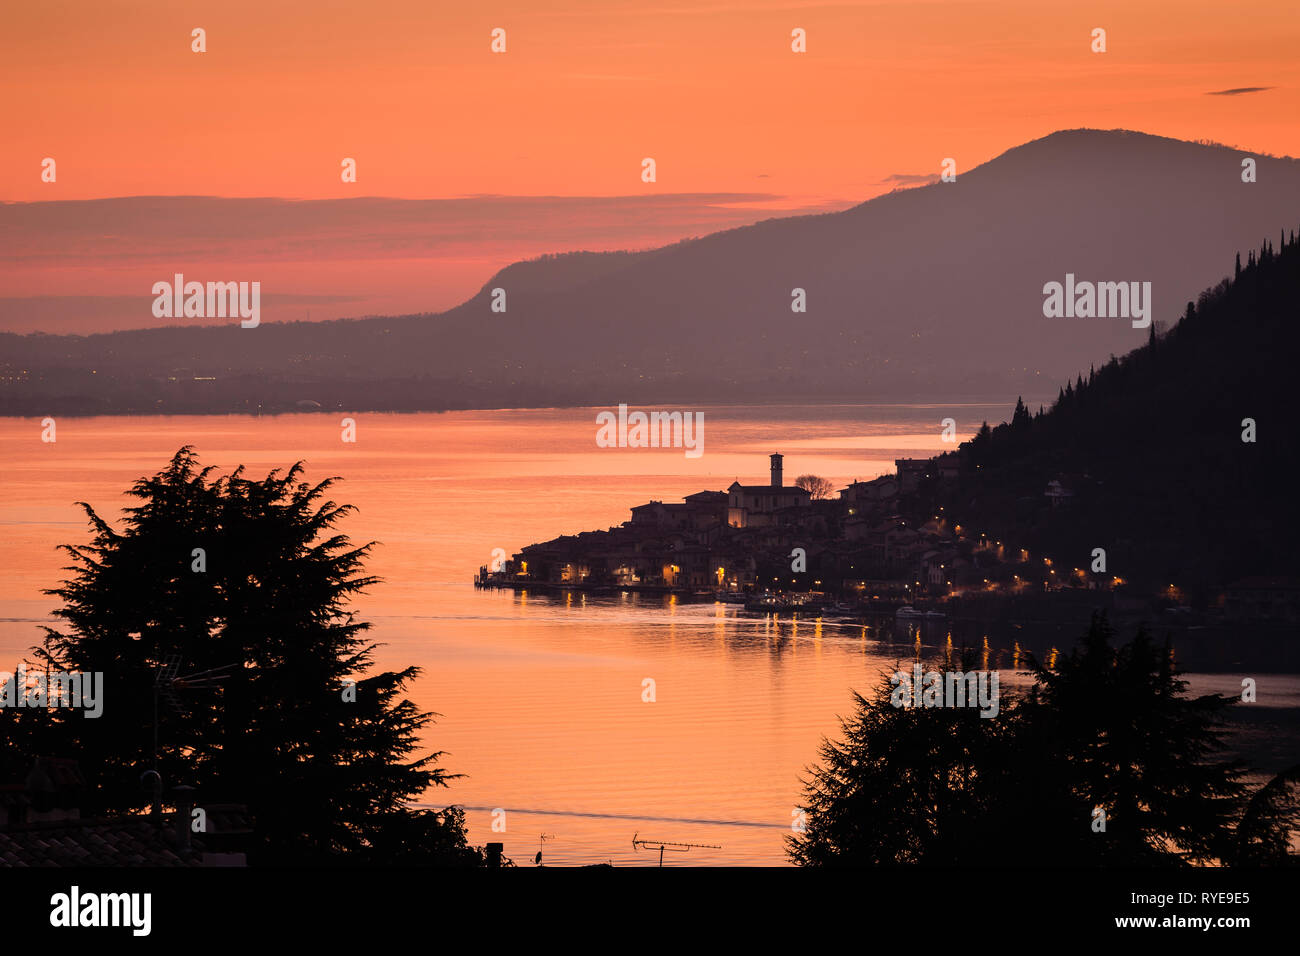 Lake Iseo with the town of Peschiera Maraglio on Monte Isola at dawn, Lombardy, Italy - Stock Image